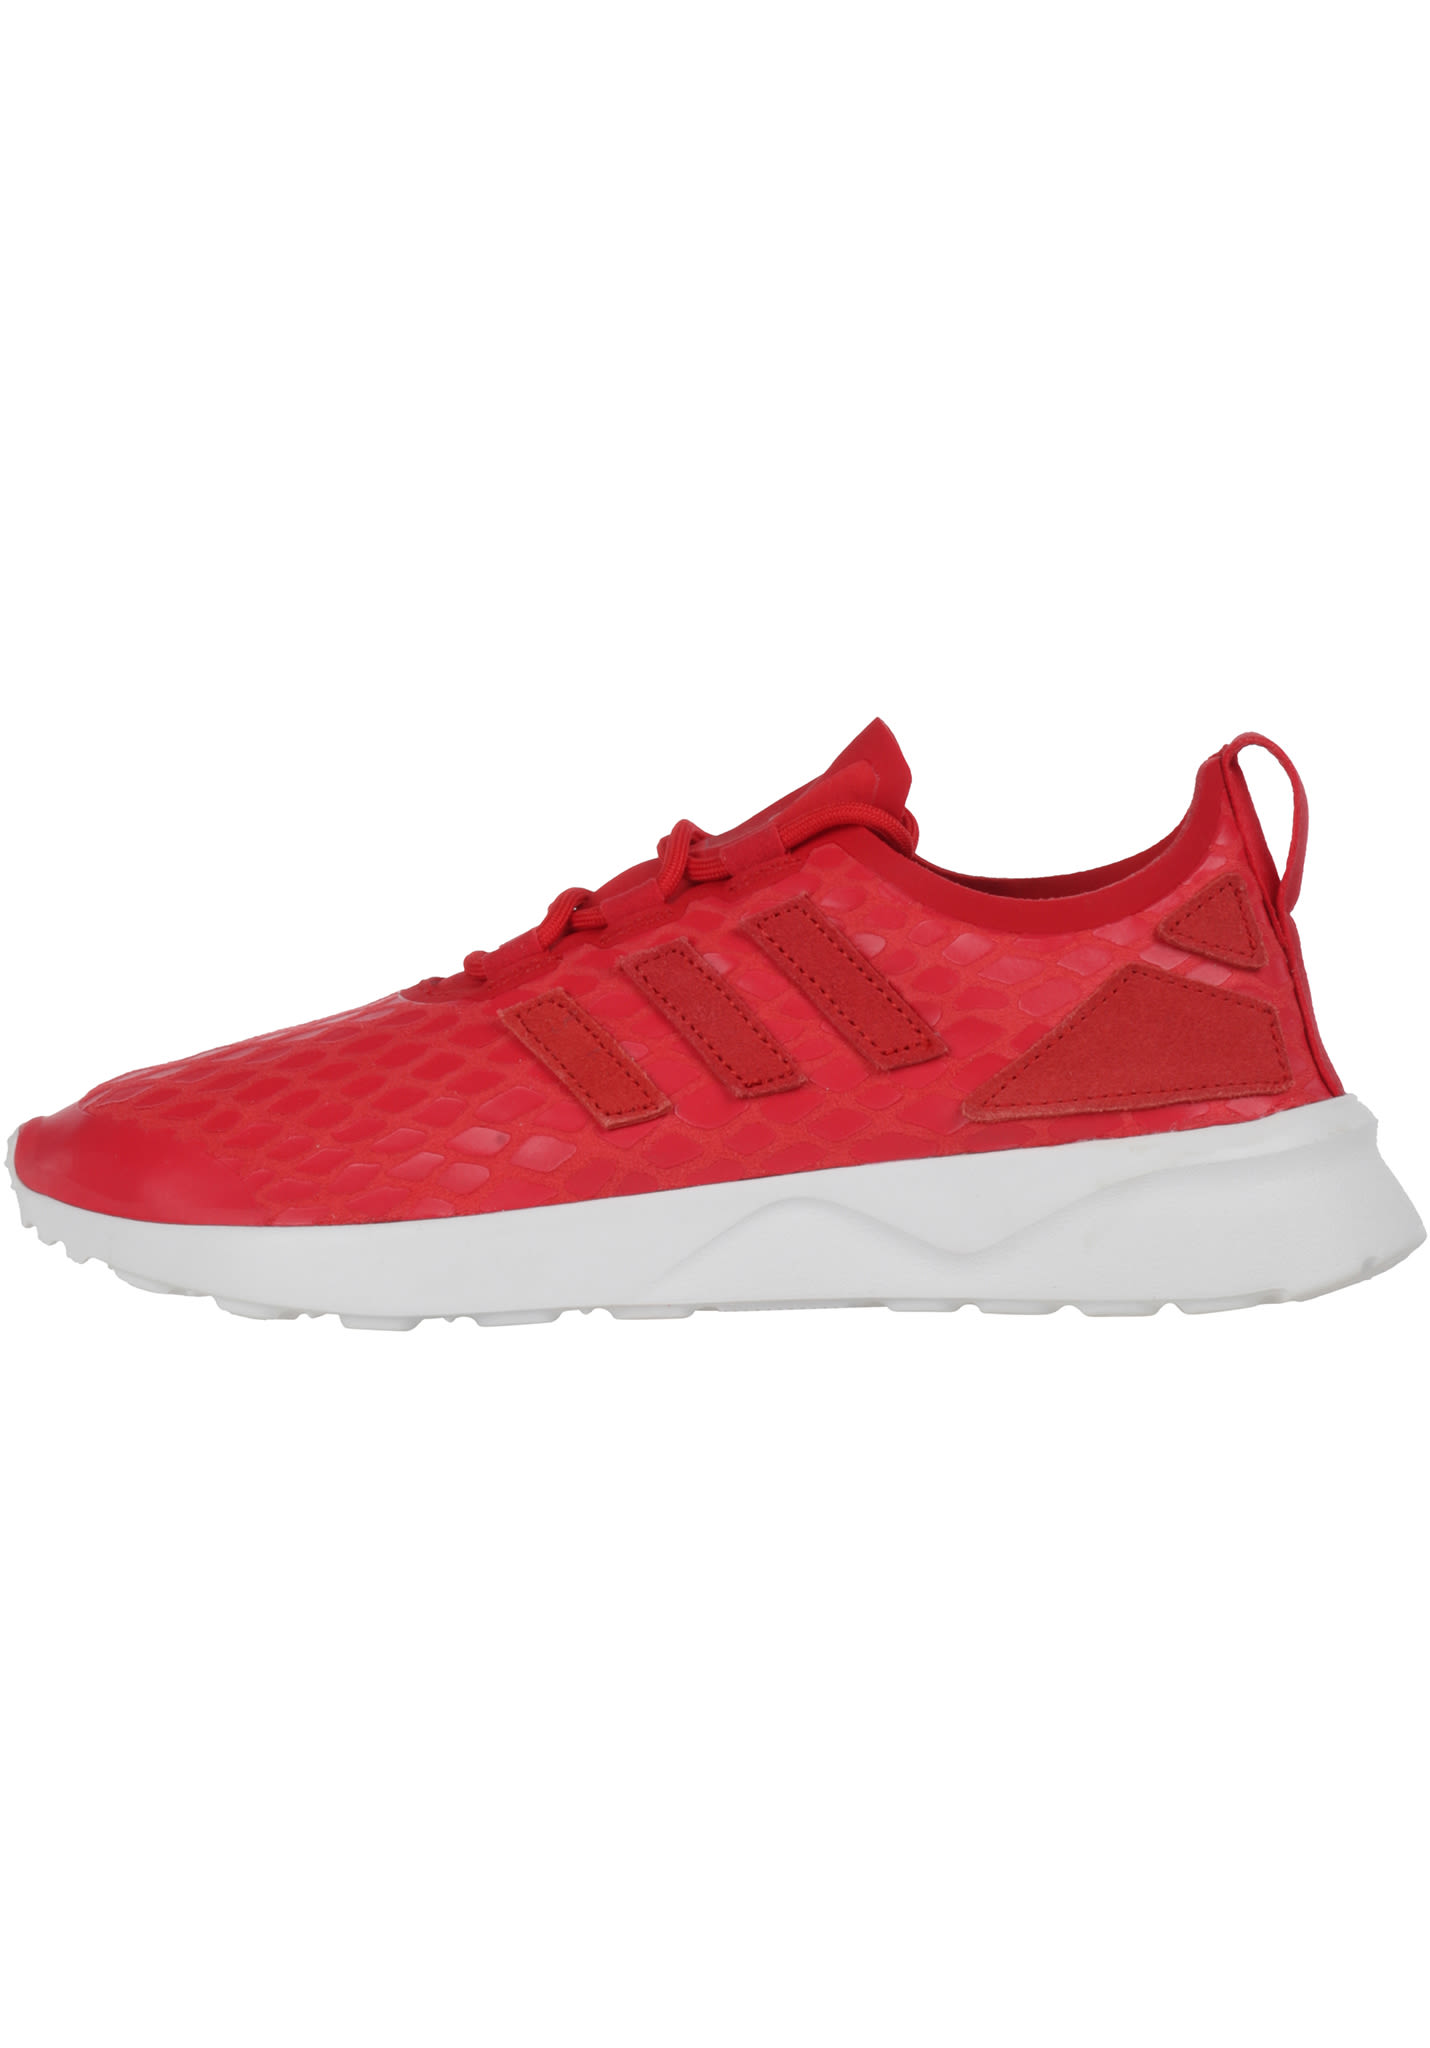 adidas zx flux adv rouge